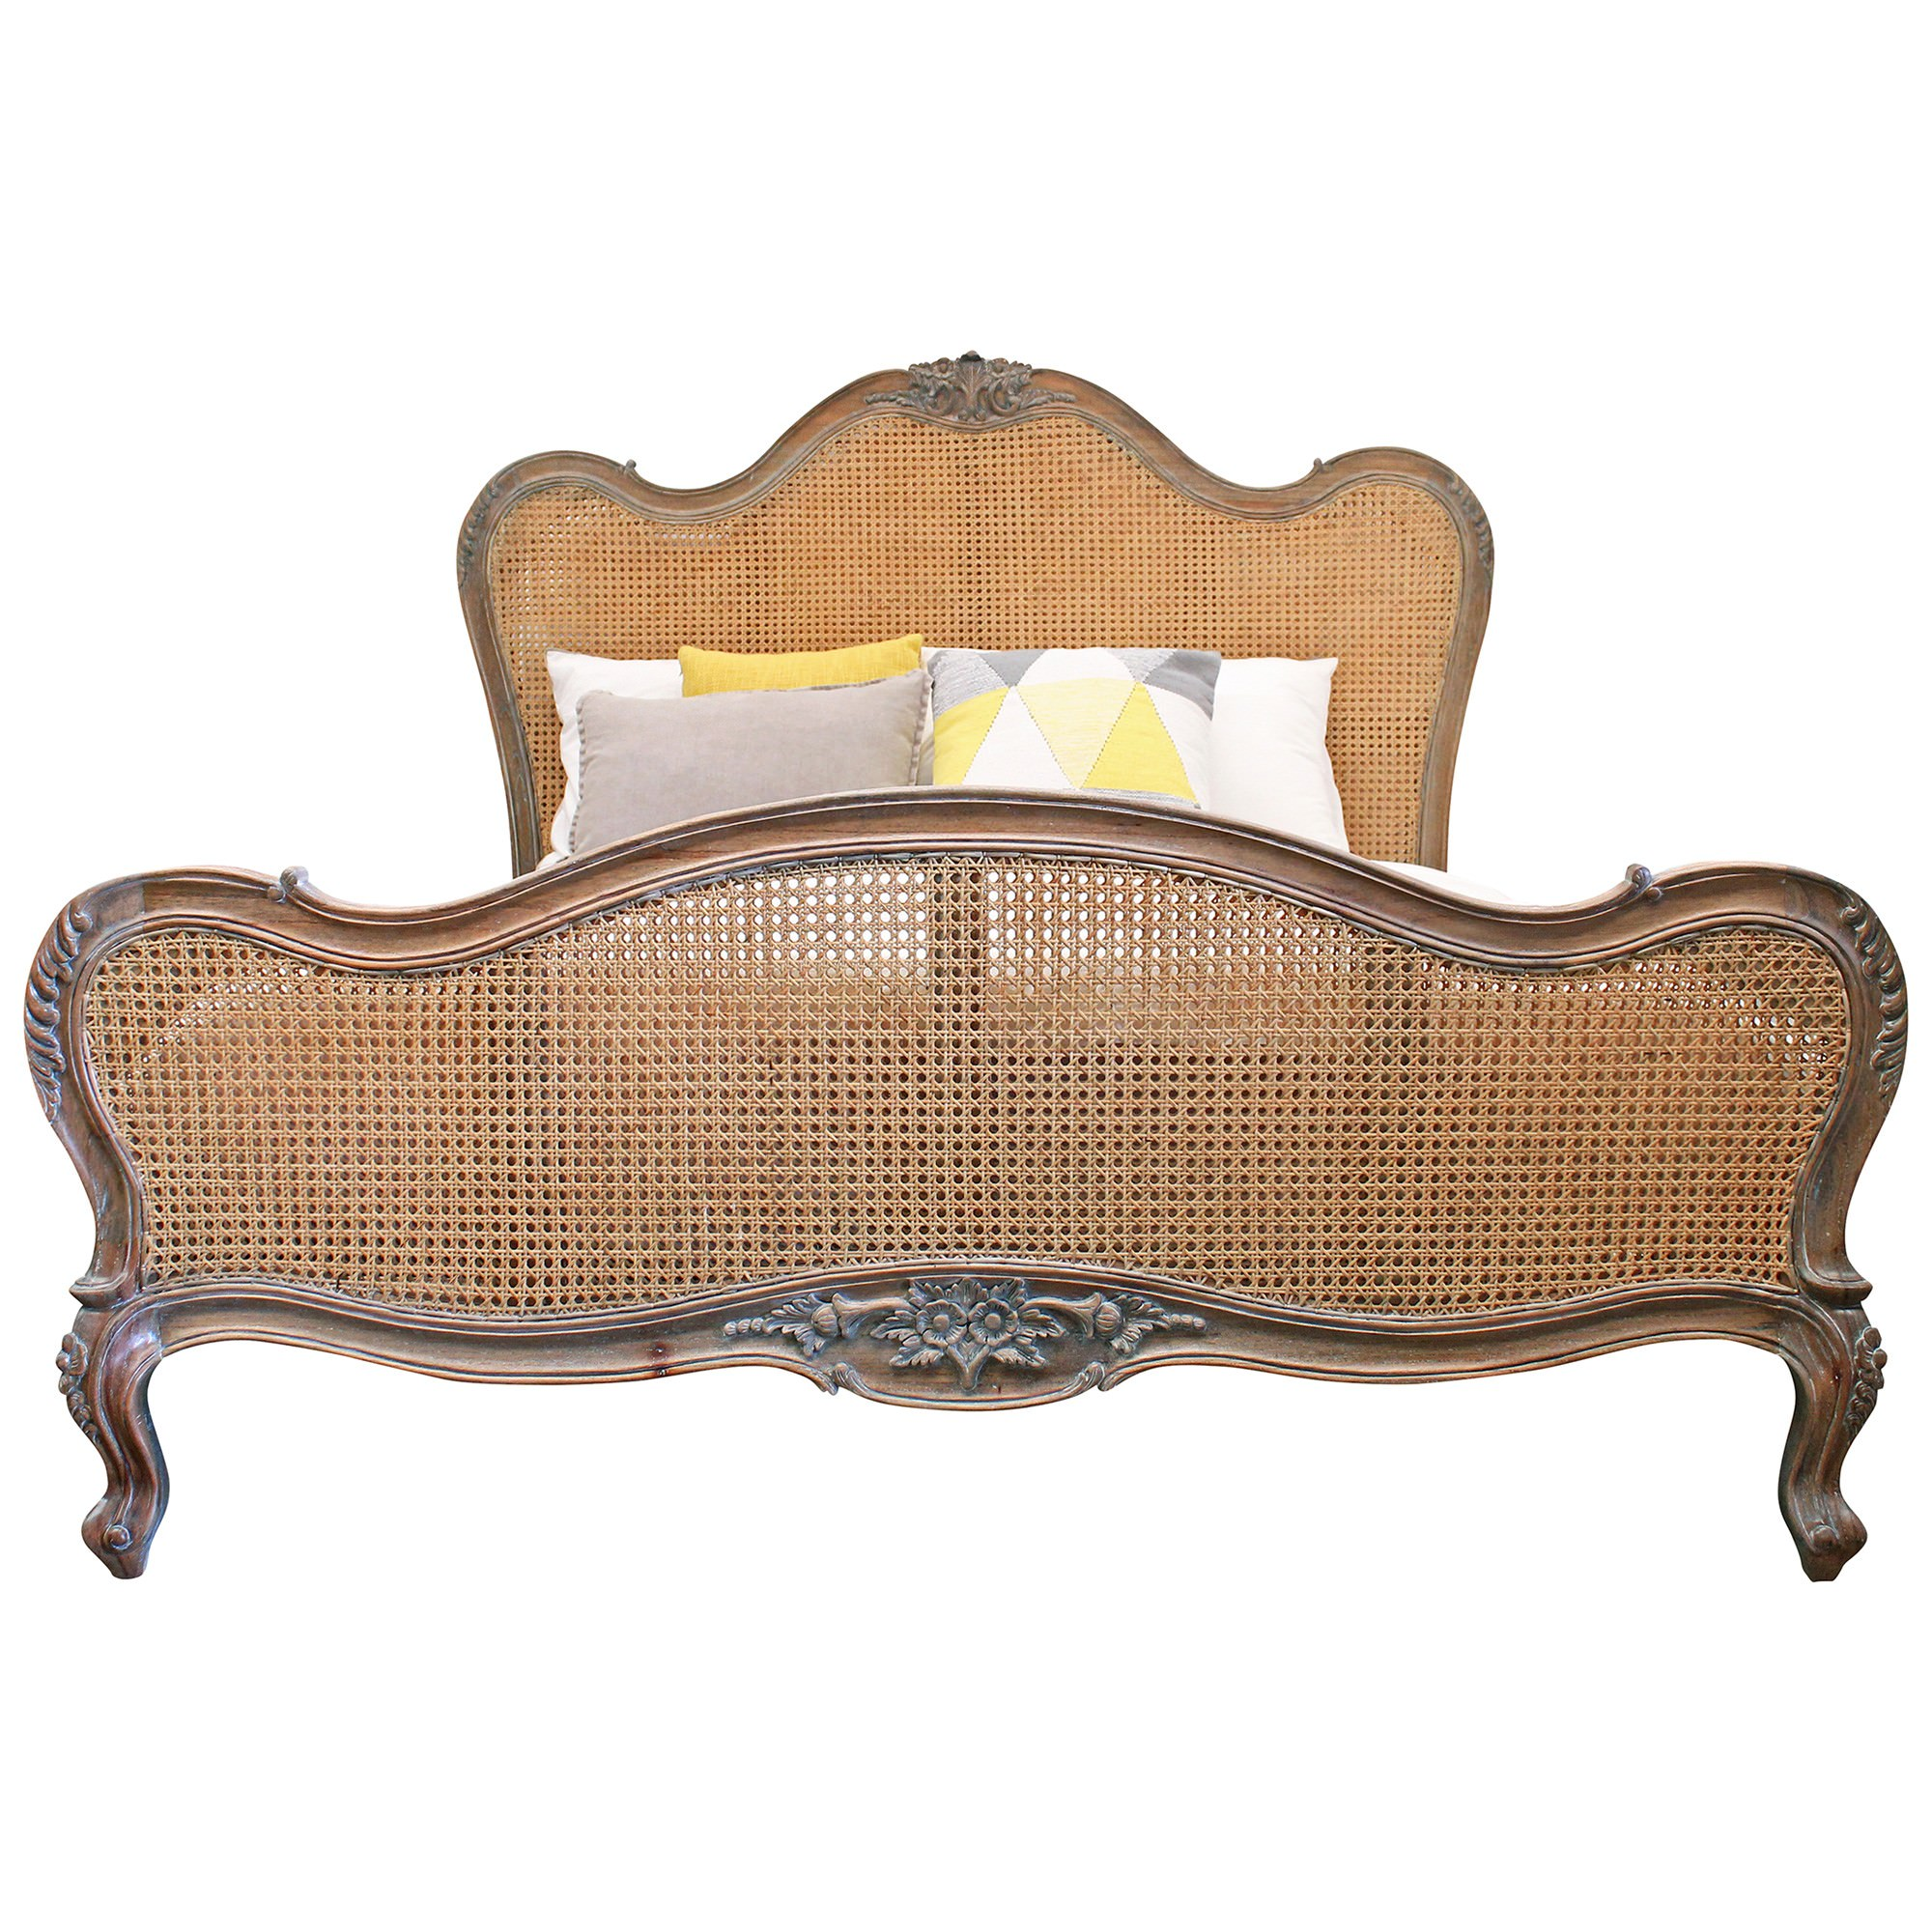 Chester Hand Crafted Solid Mahogany Timber and Rattan King Bed, Weathered Oak